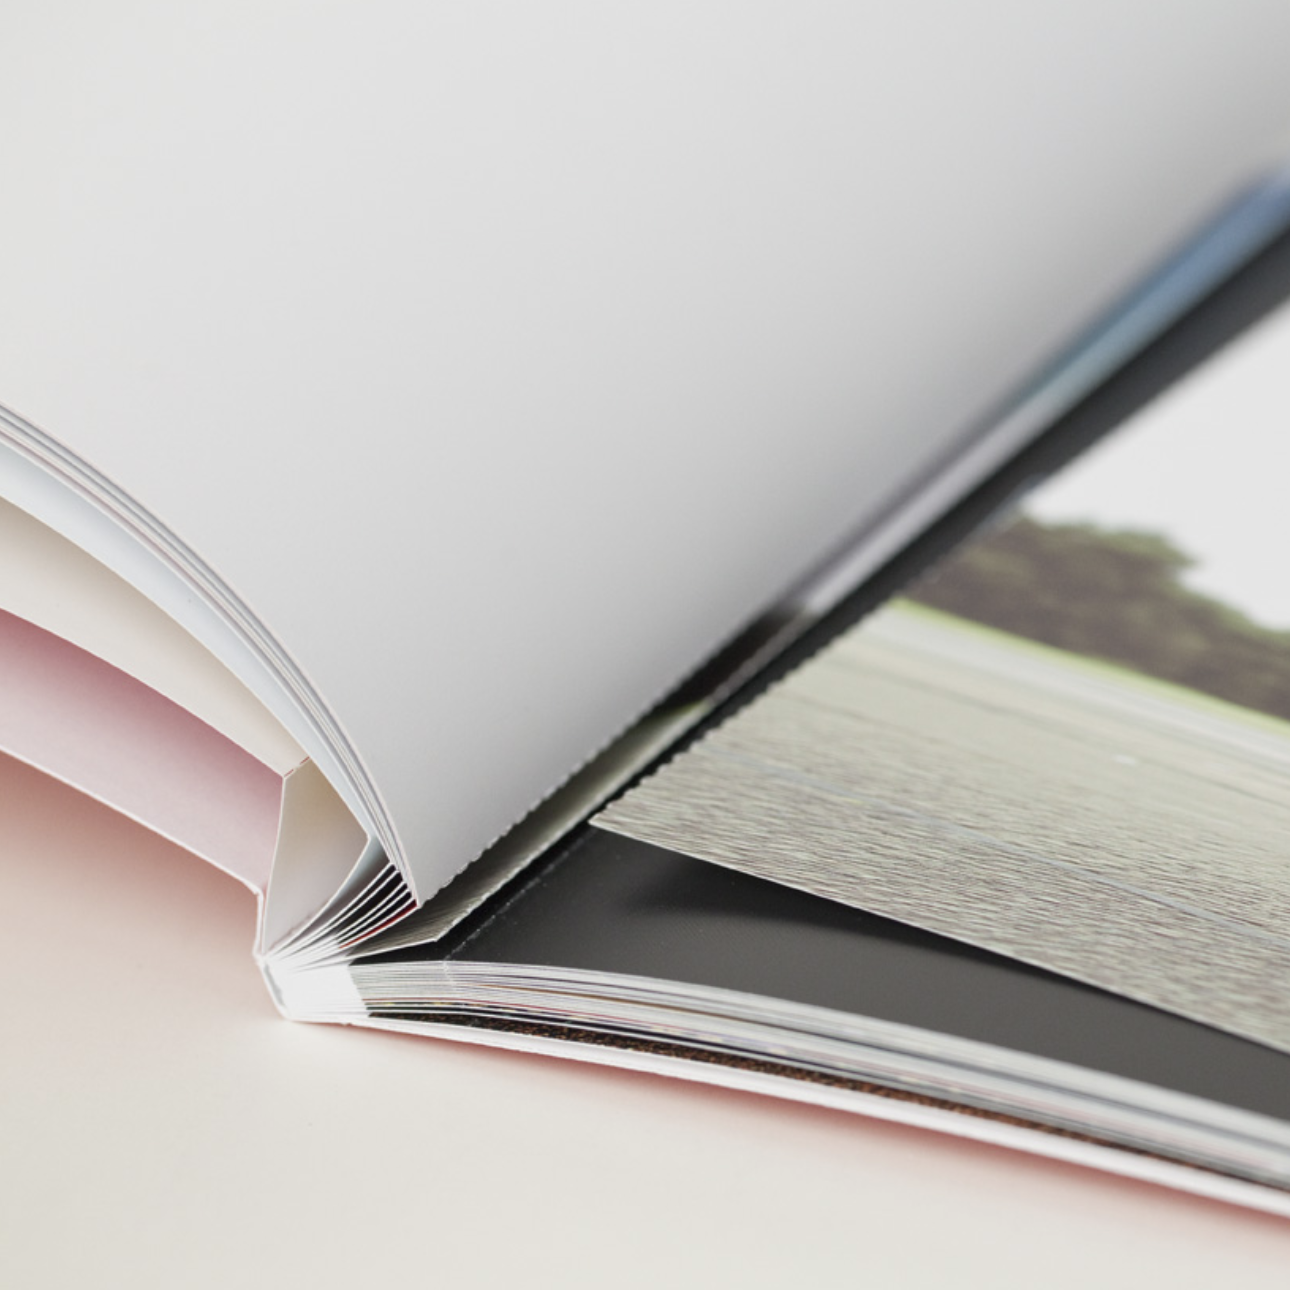 Photo Editing, Design & Copy: Take a Page from Dom Romney